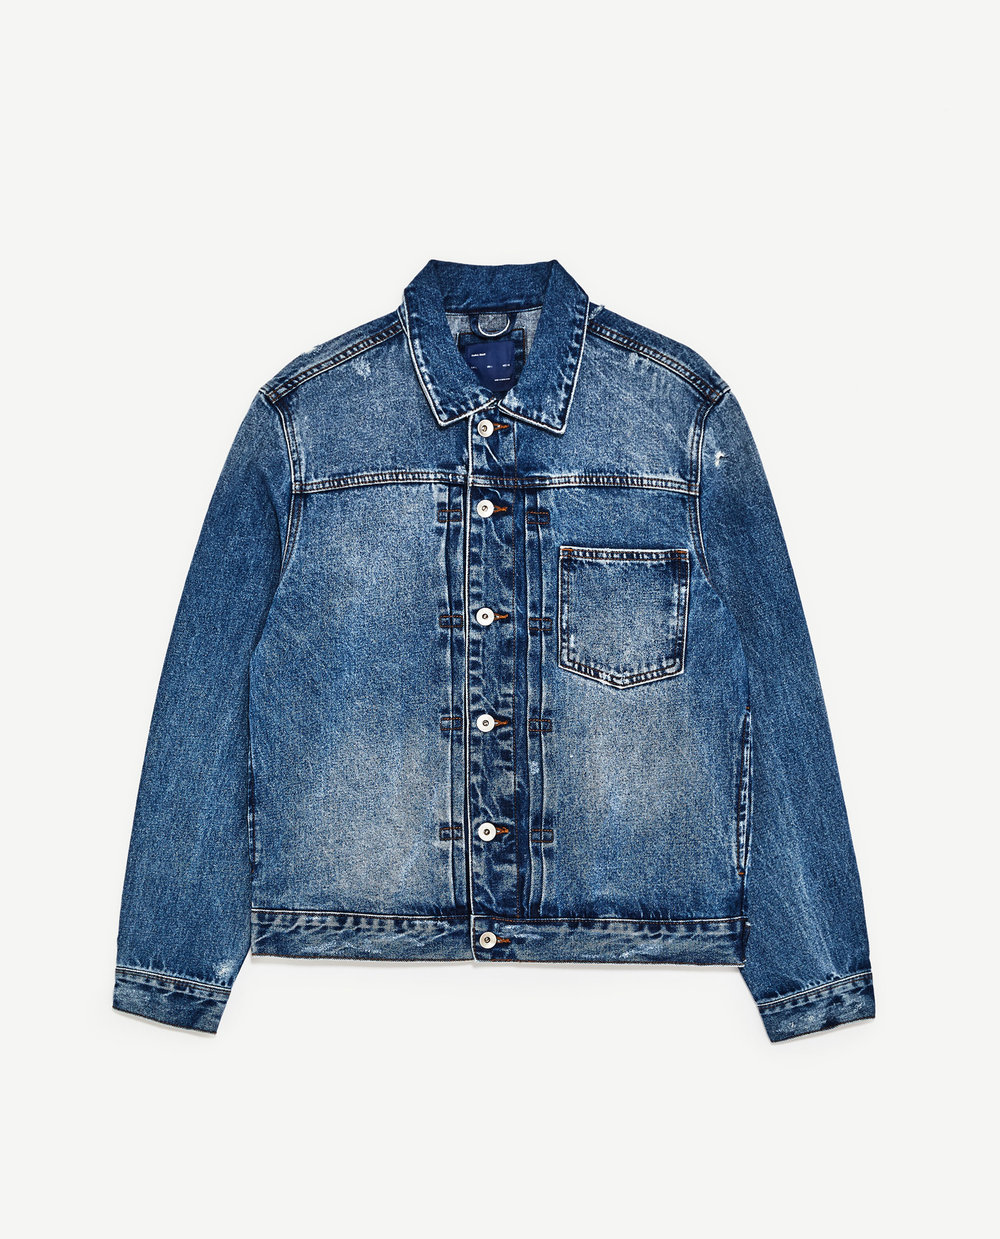 Zara Denim Jacket for Men